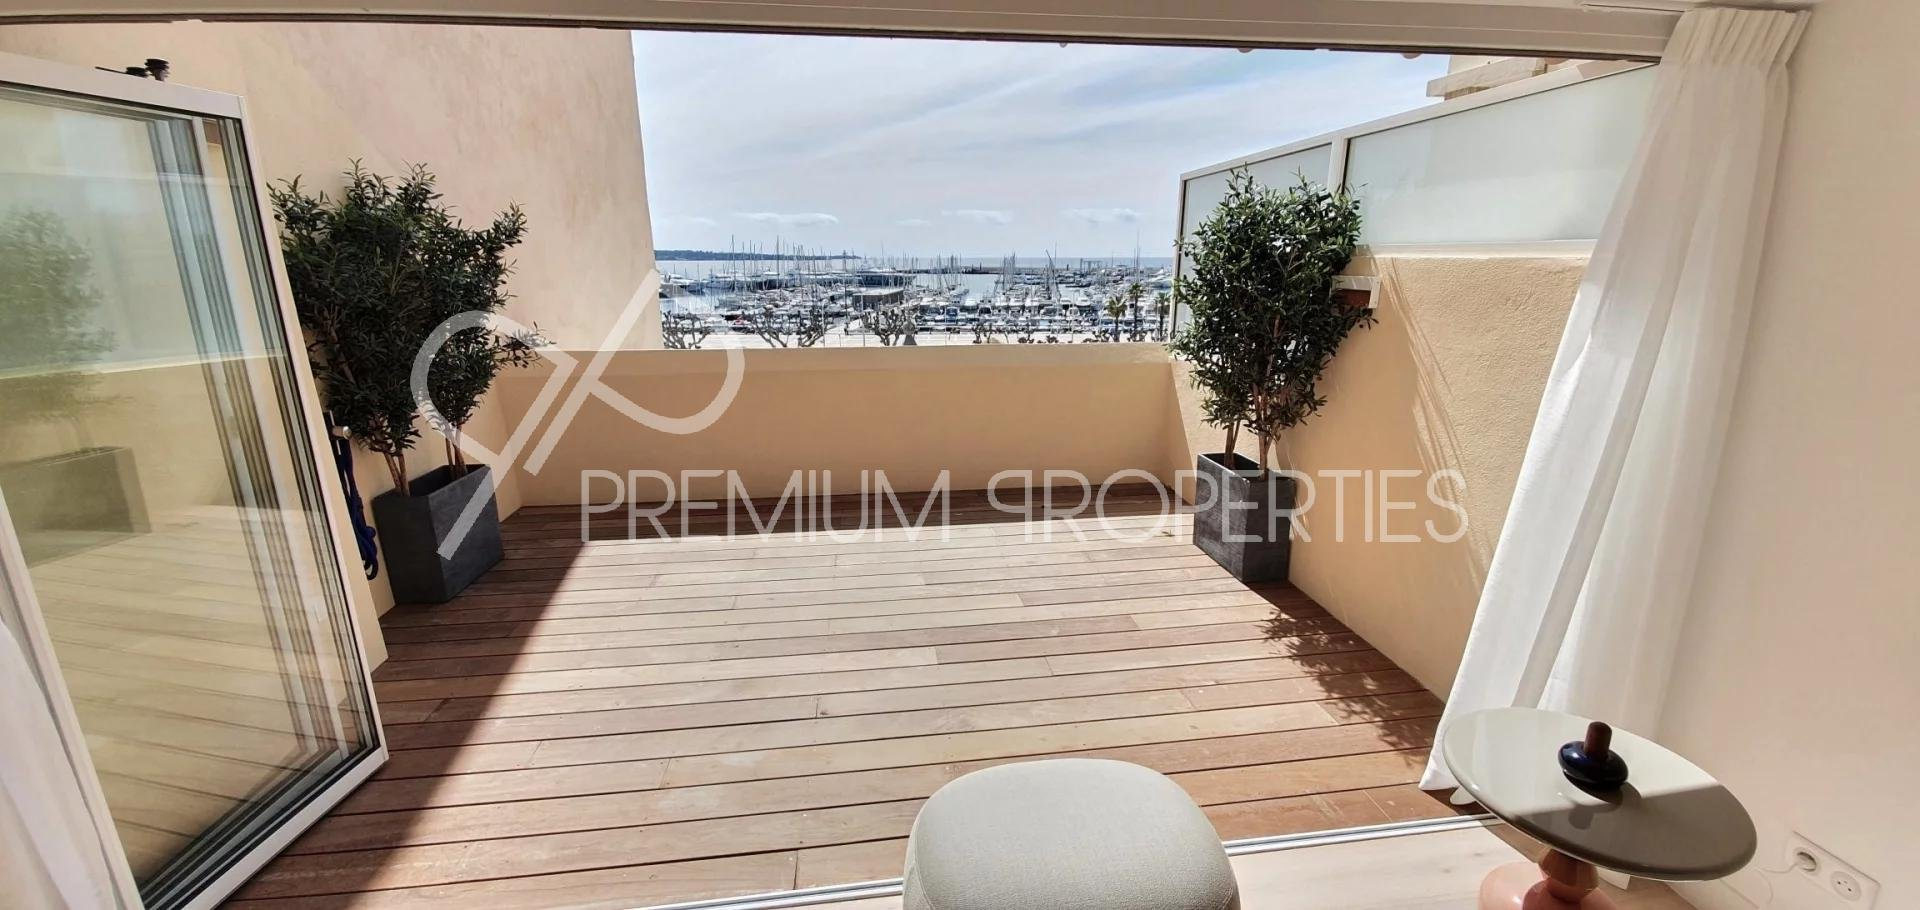 CANNES BANANE;South facing Duplex opening onto the old harbour